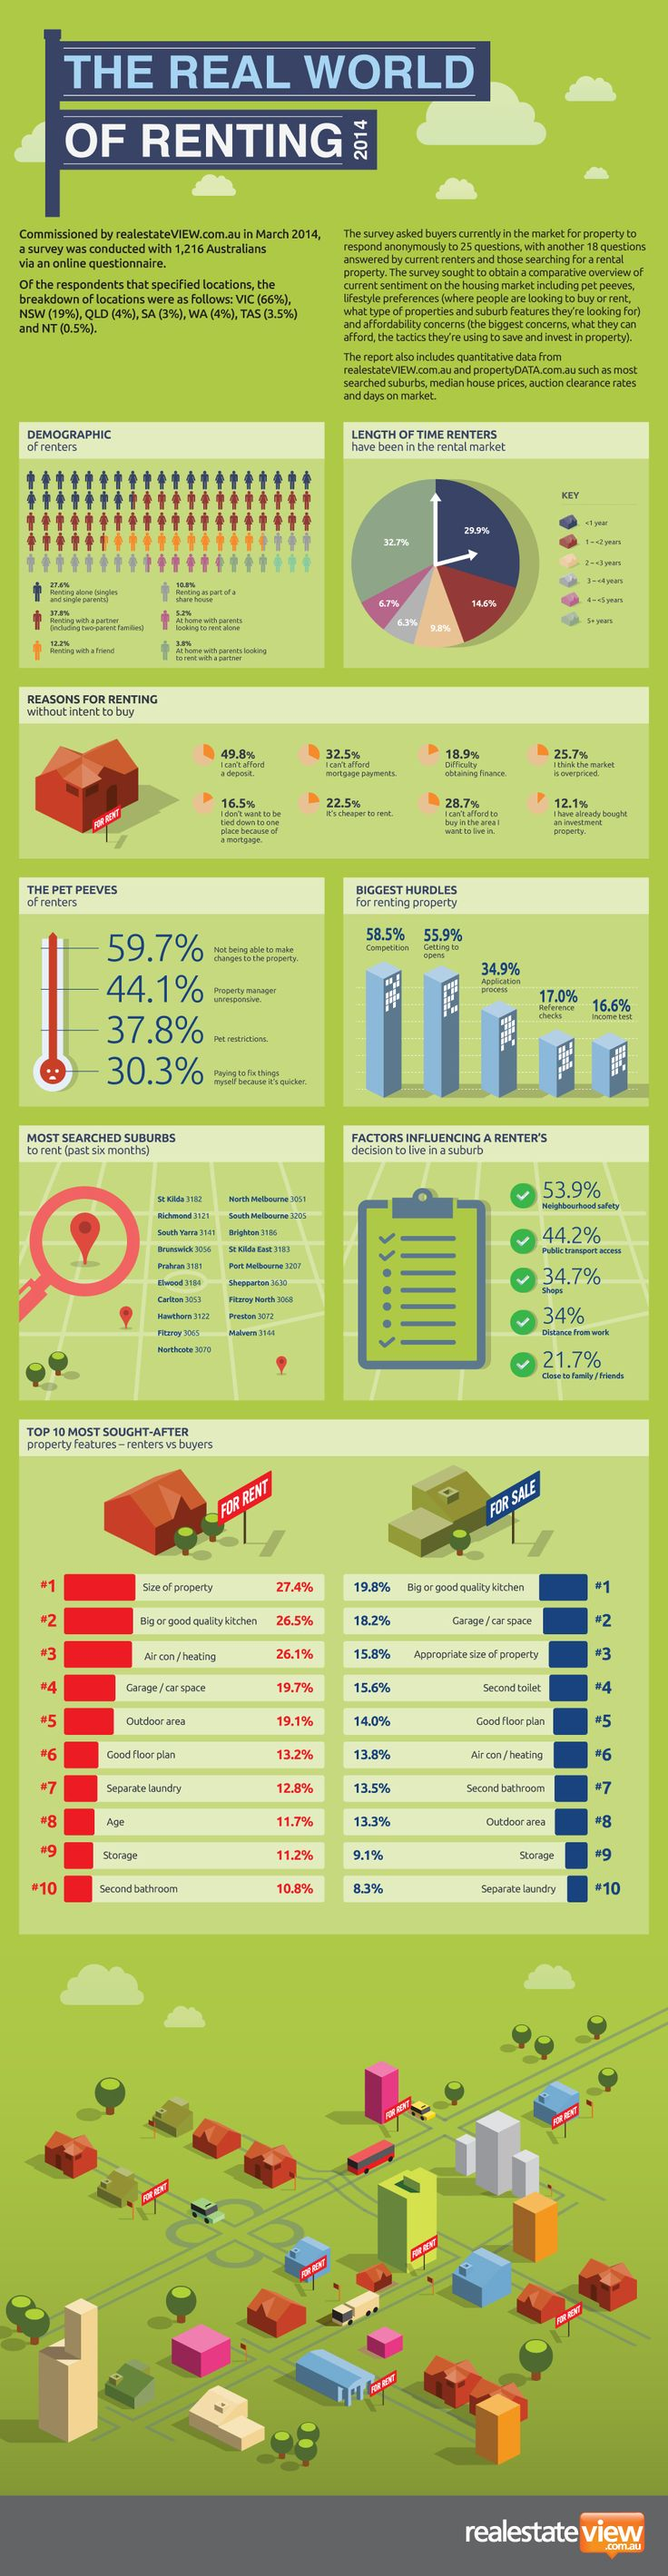 The Real World of Renting 2014 - Infographic - ExpertView Blog